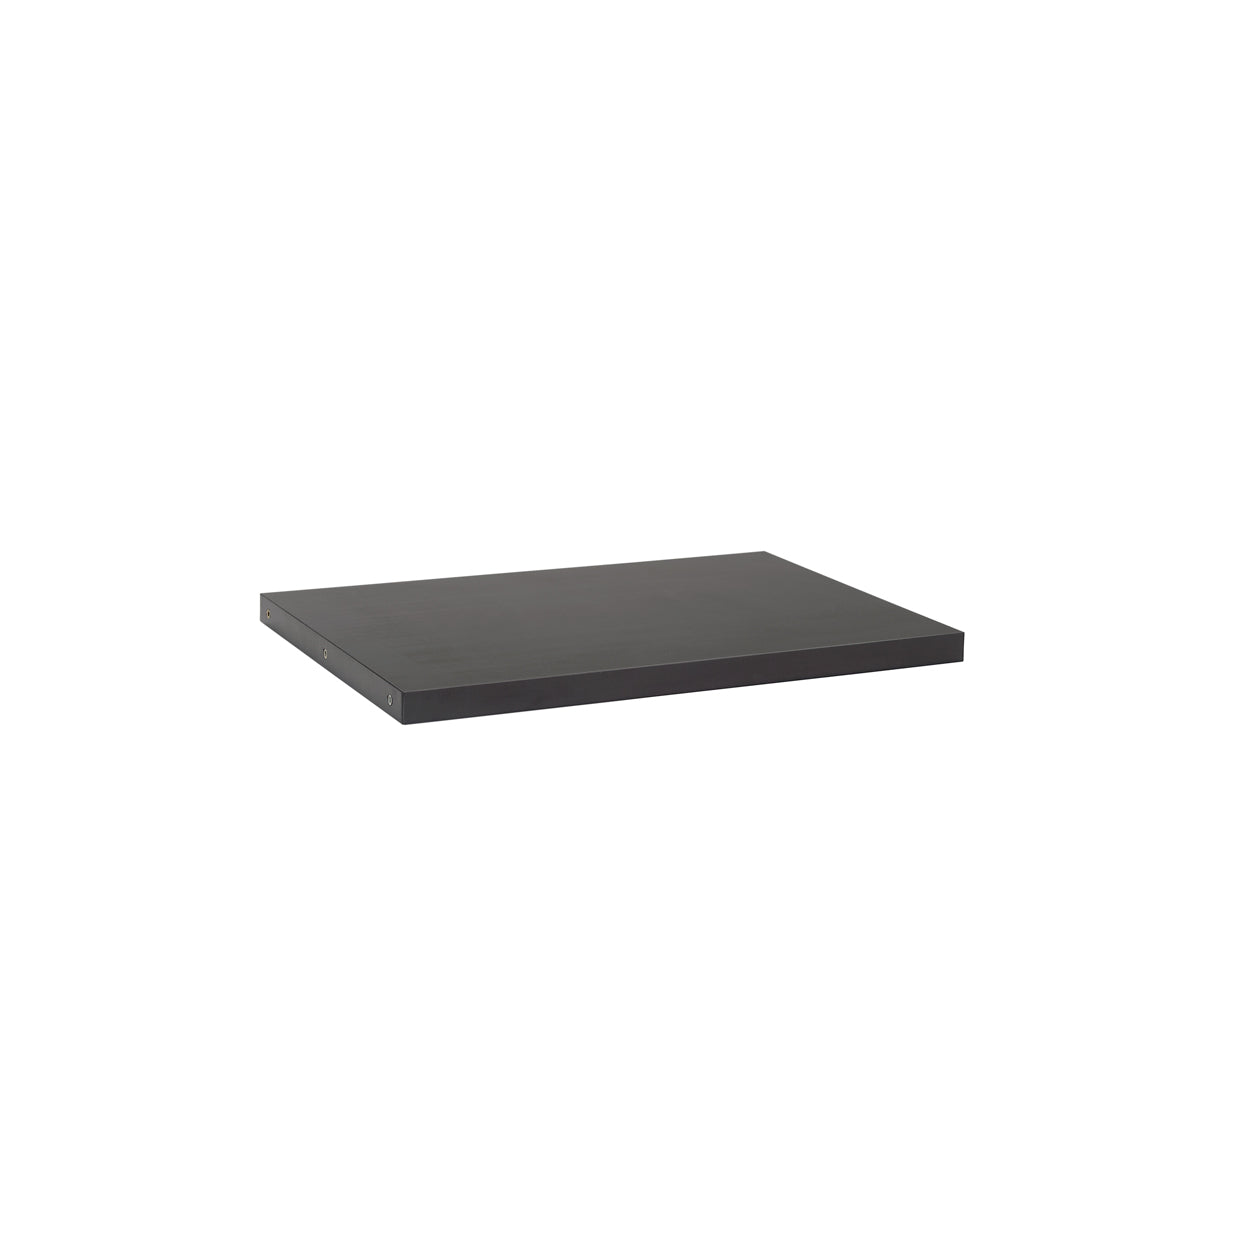 MAXe 30 mm shelf 400 D - 600 mm bay  593 W x 30 mm Thick E6406